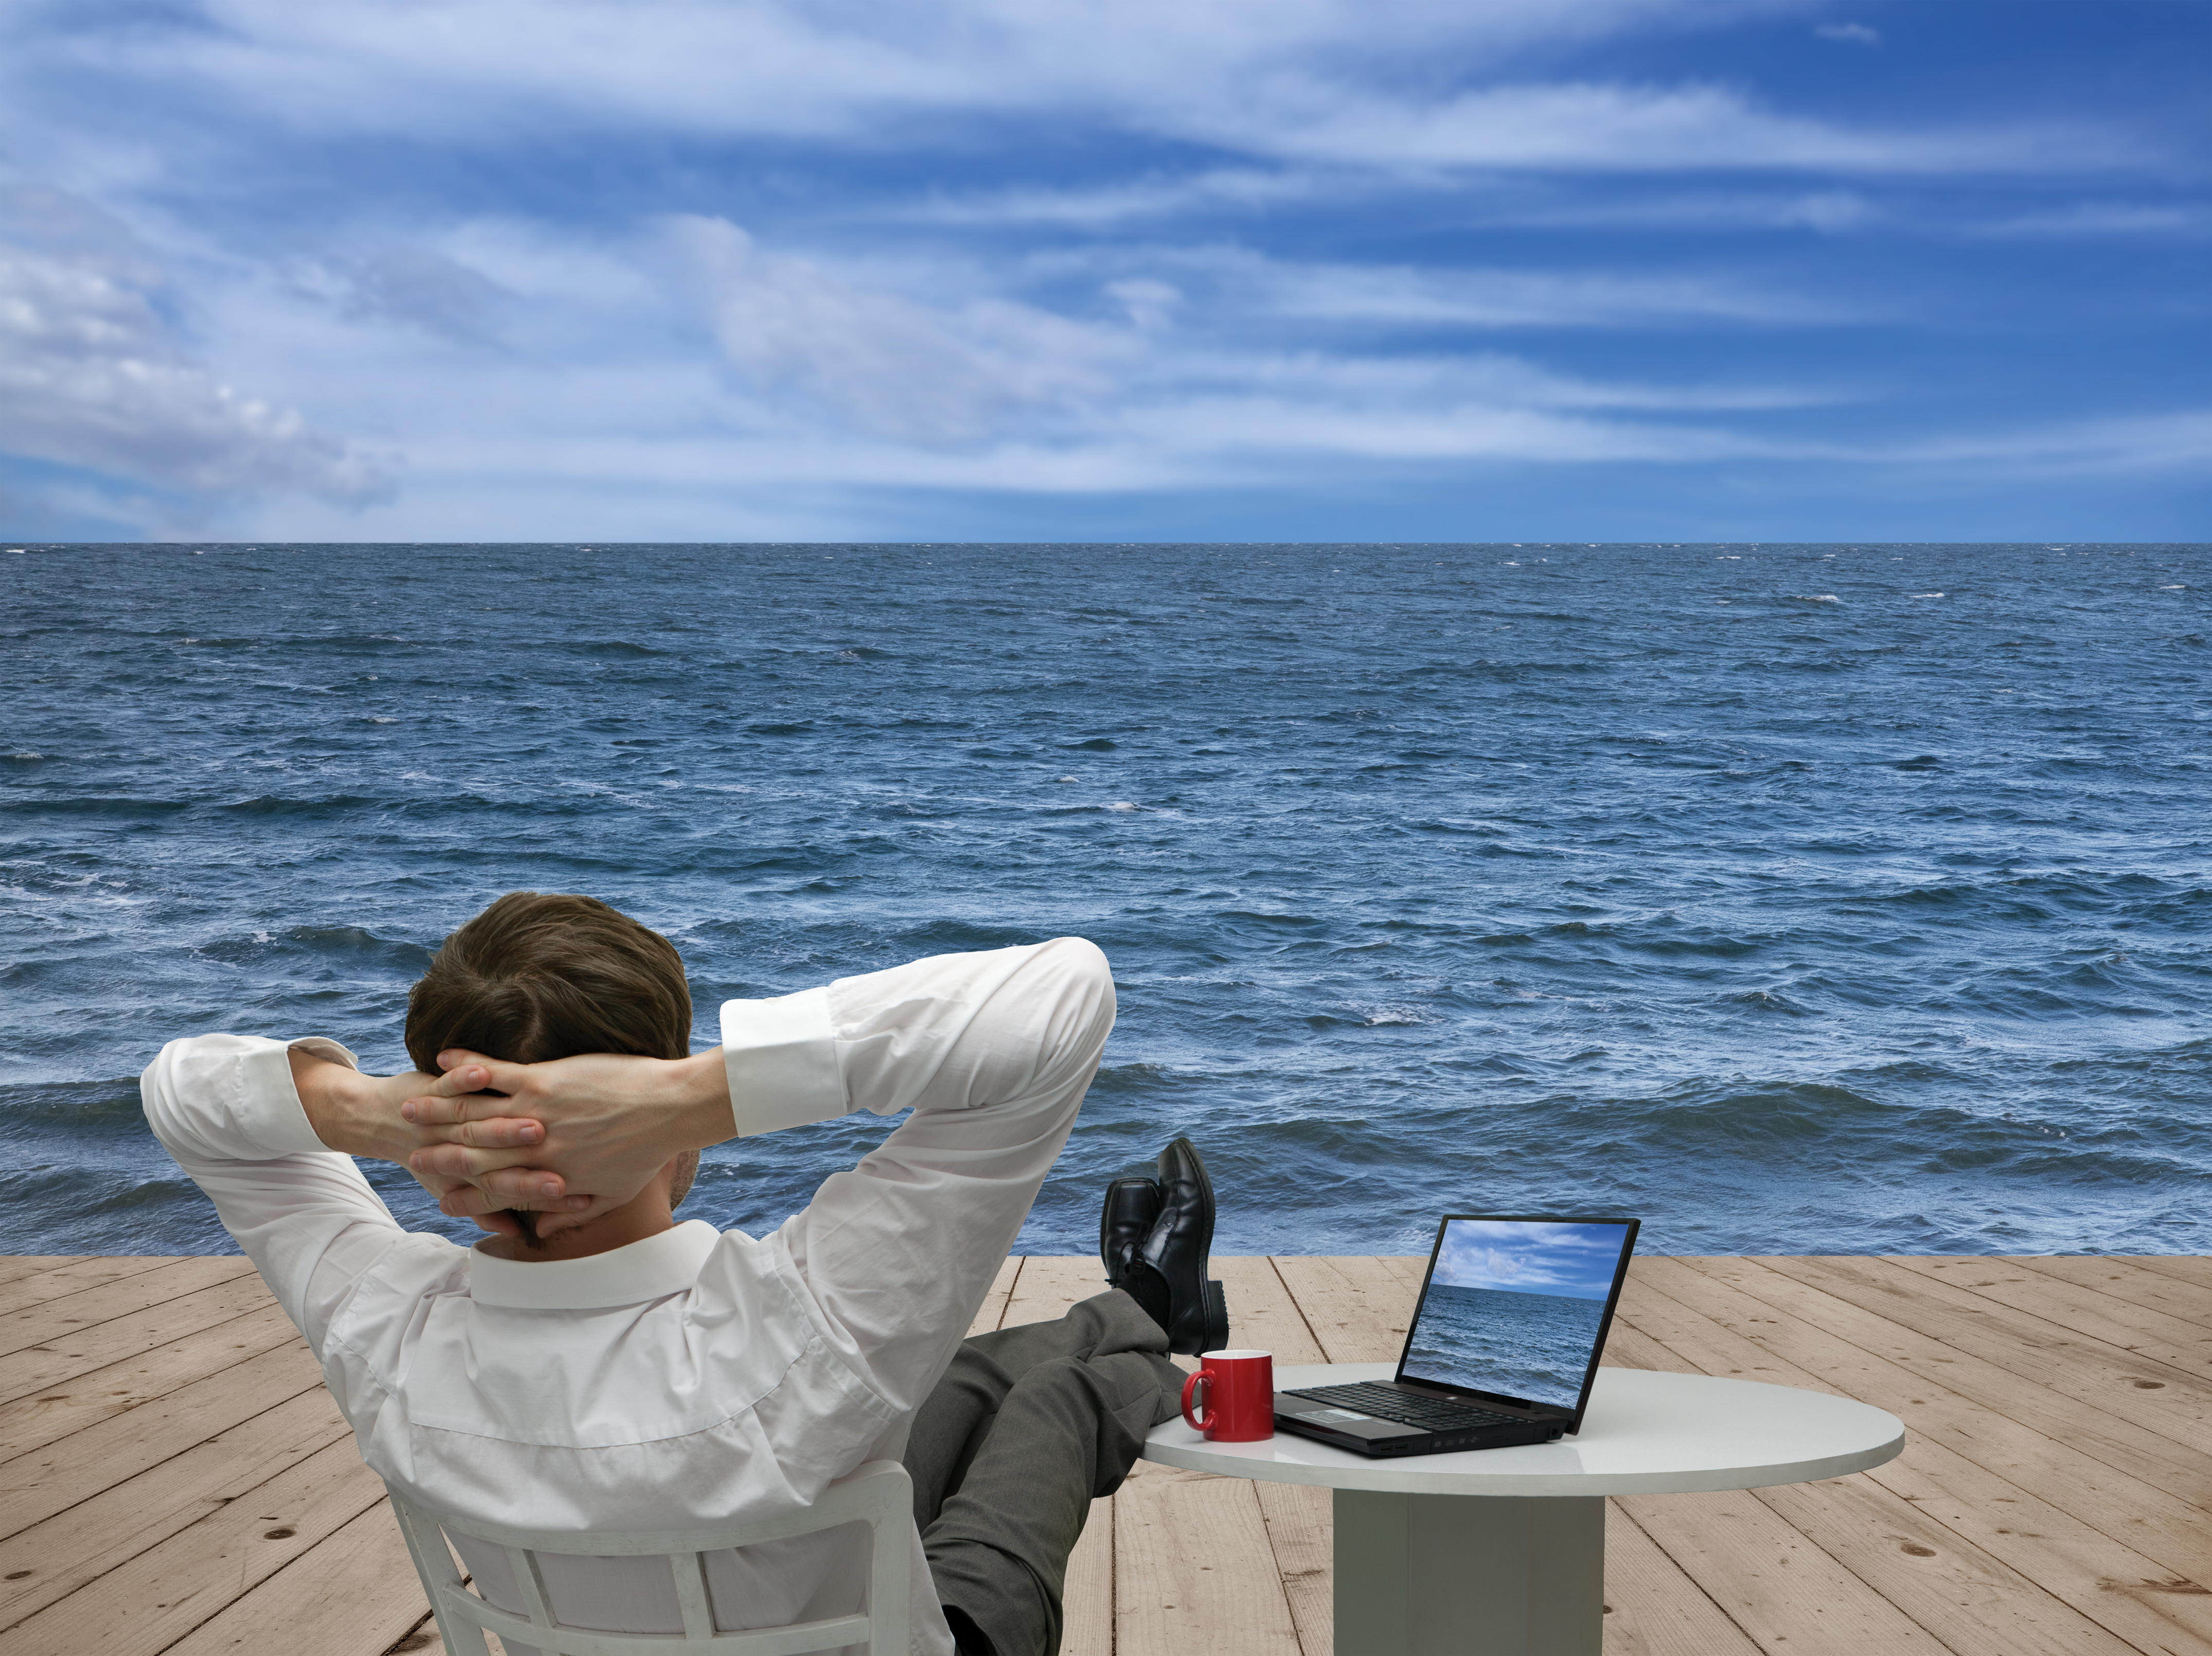 All work and no play – Small business managers don't go on holiday